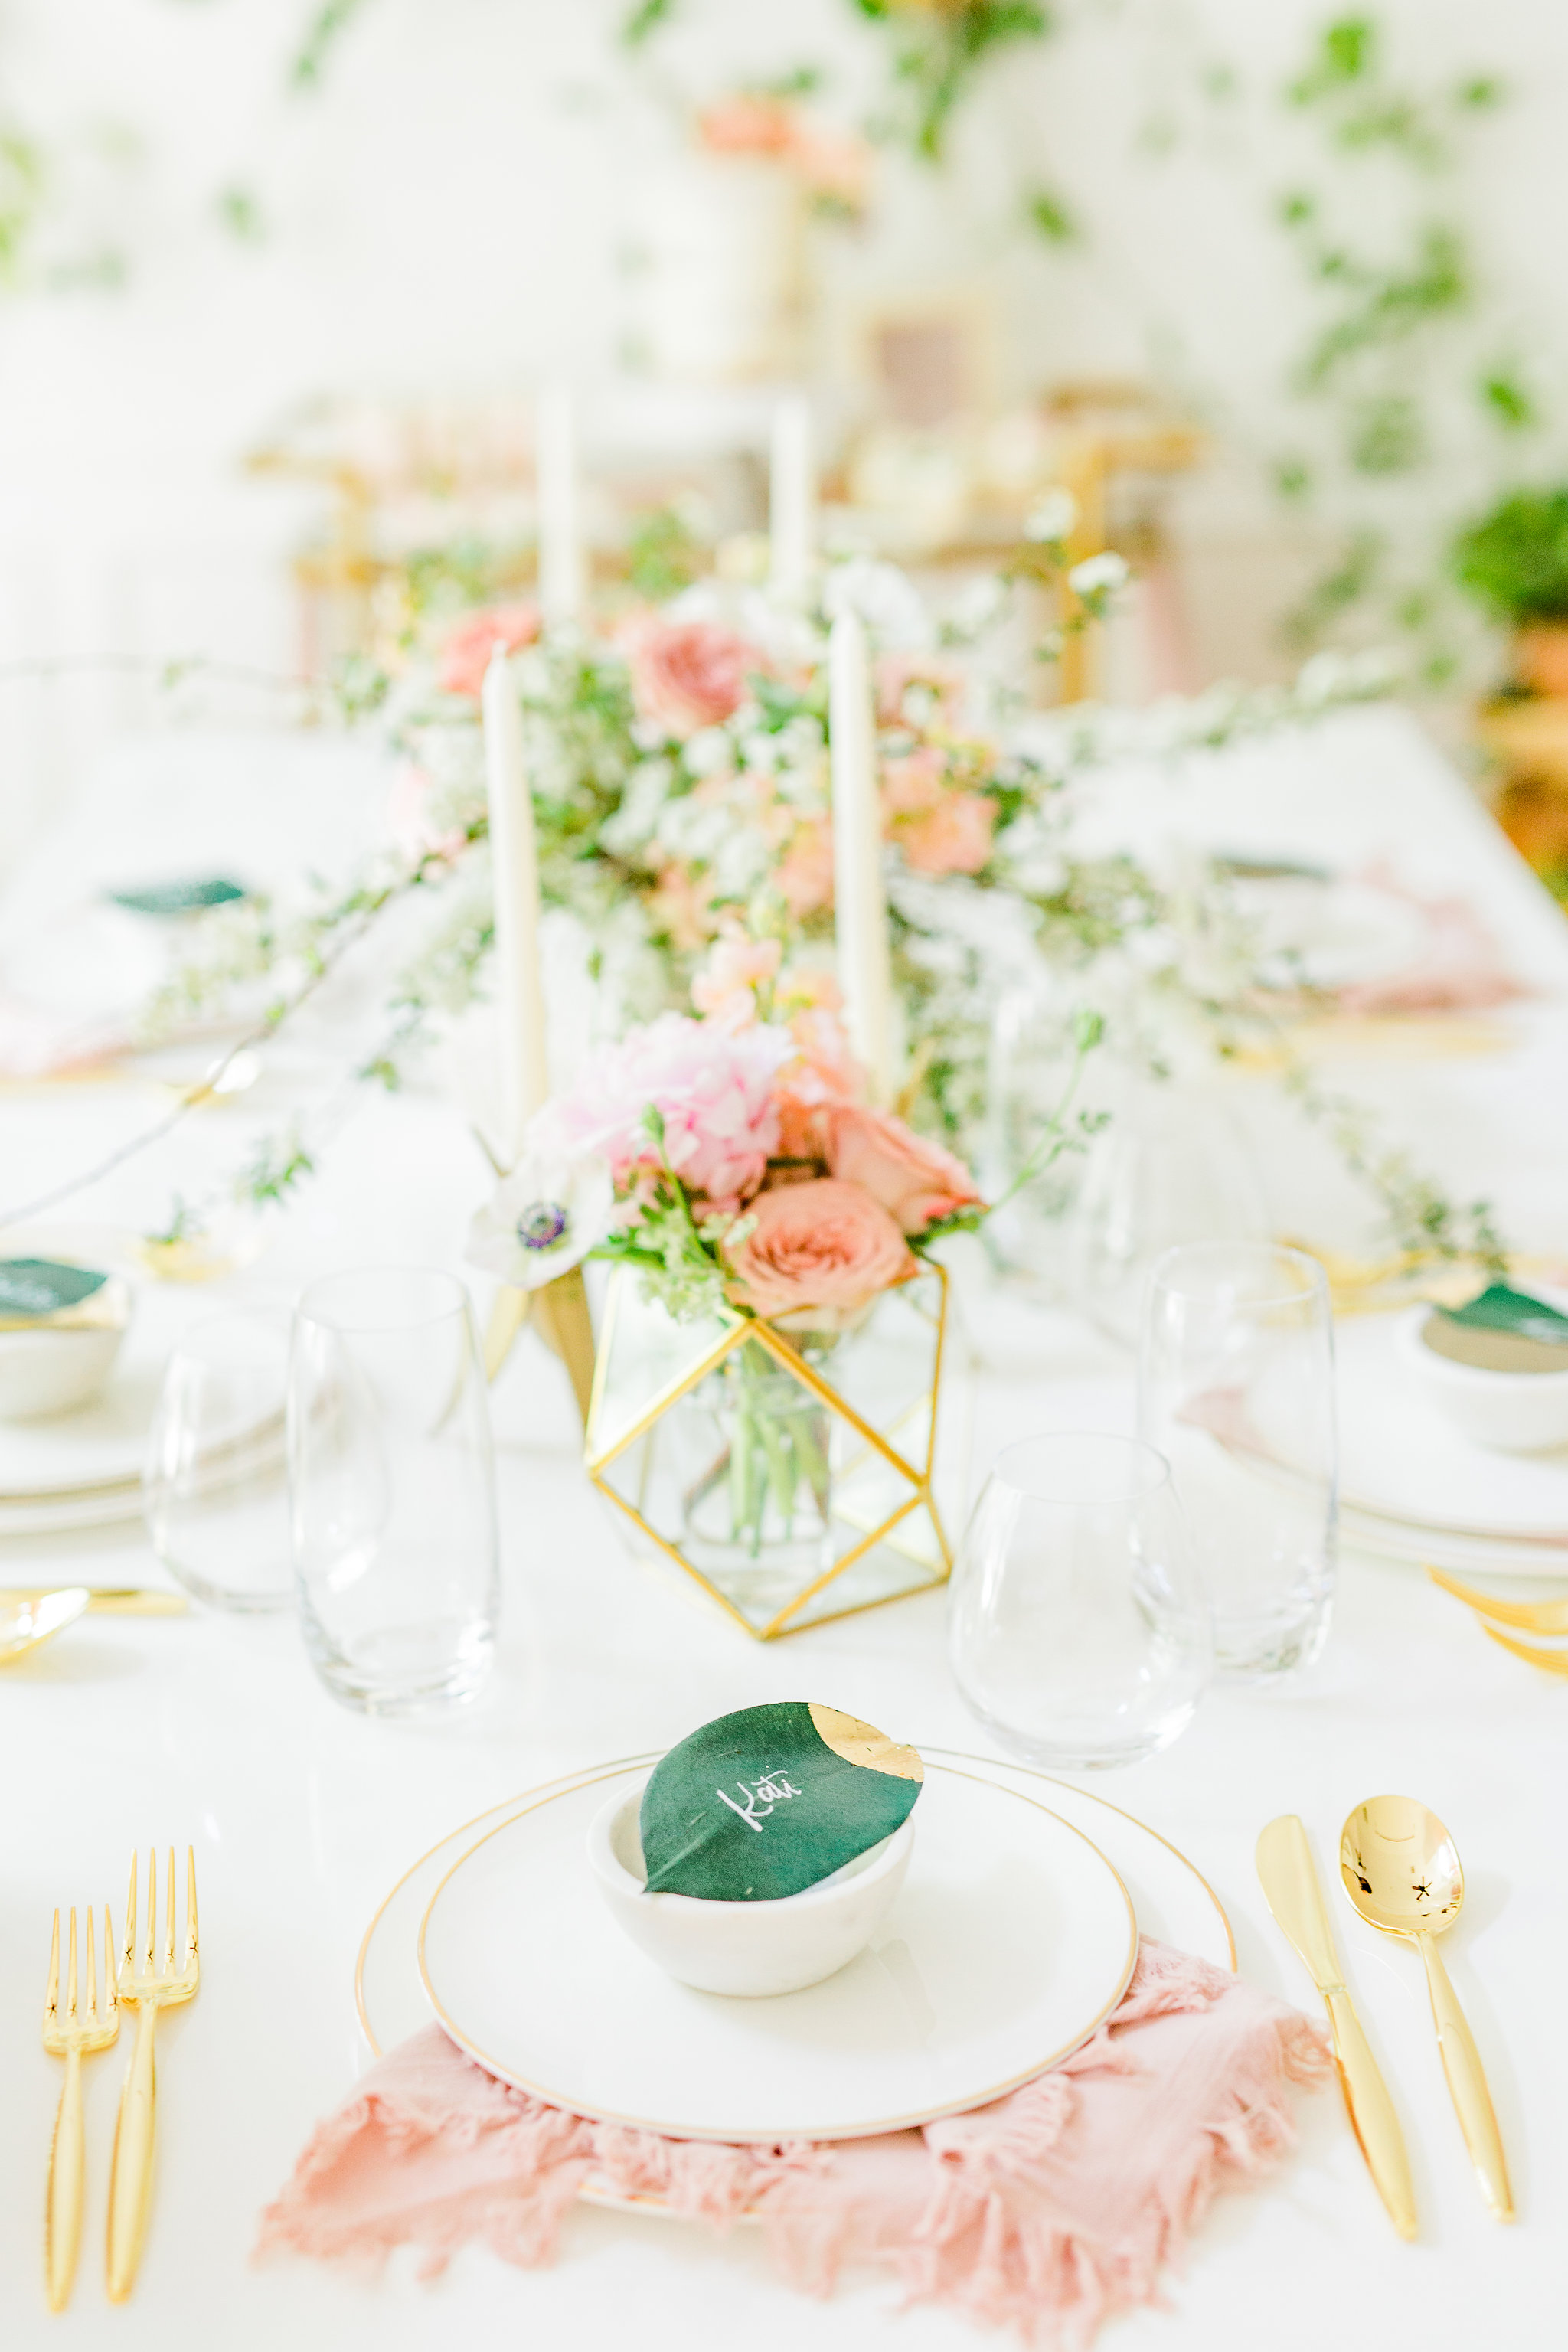 Olivia and Oliver Gold, Blush and Greenry Plants Gilded Garden Styled Bridal Shower Brunch with Bed Bath Beyond GOld terrarium blush bridal shower Joyfullygreen .jpg